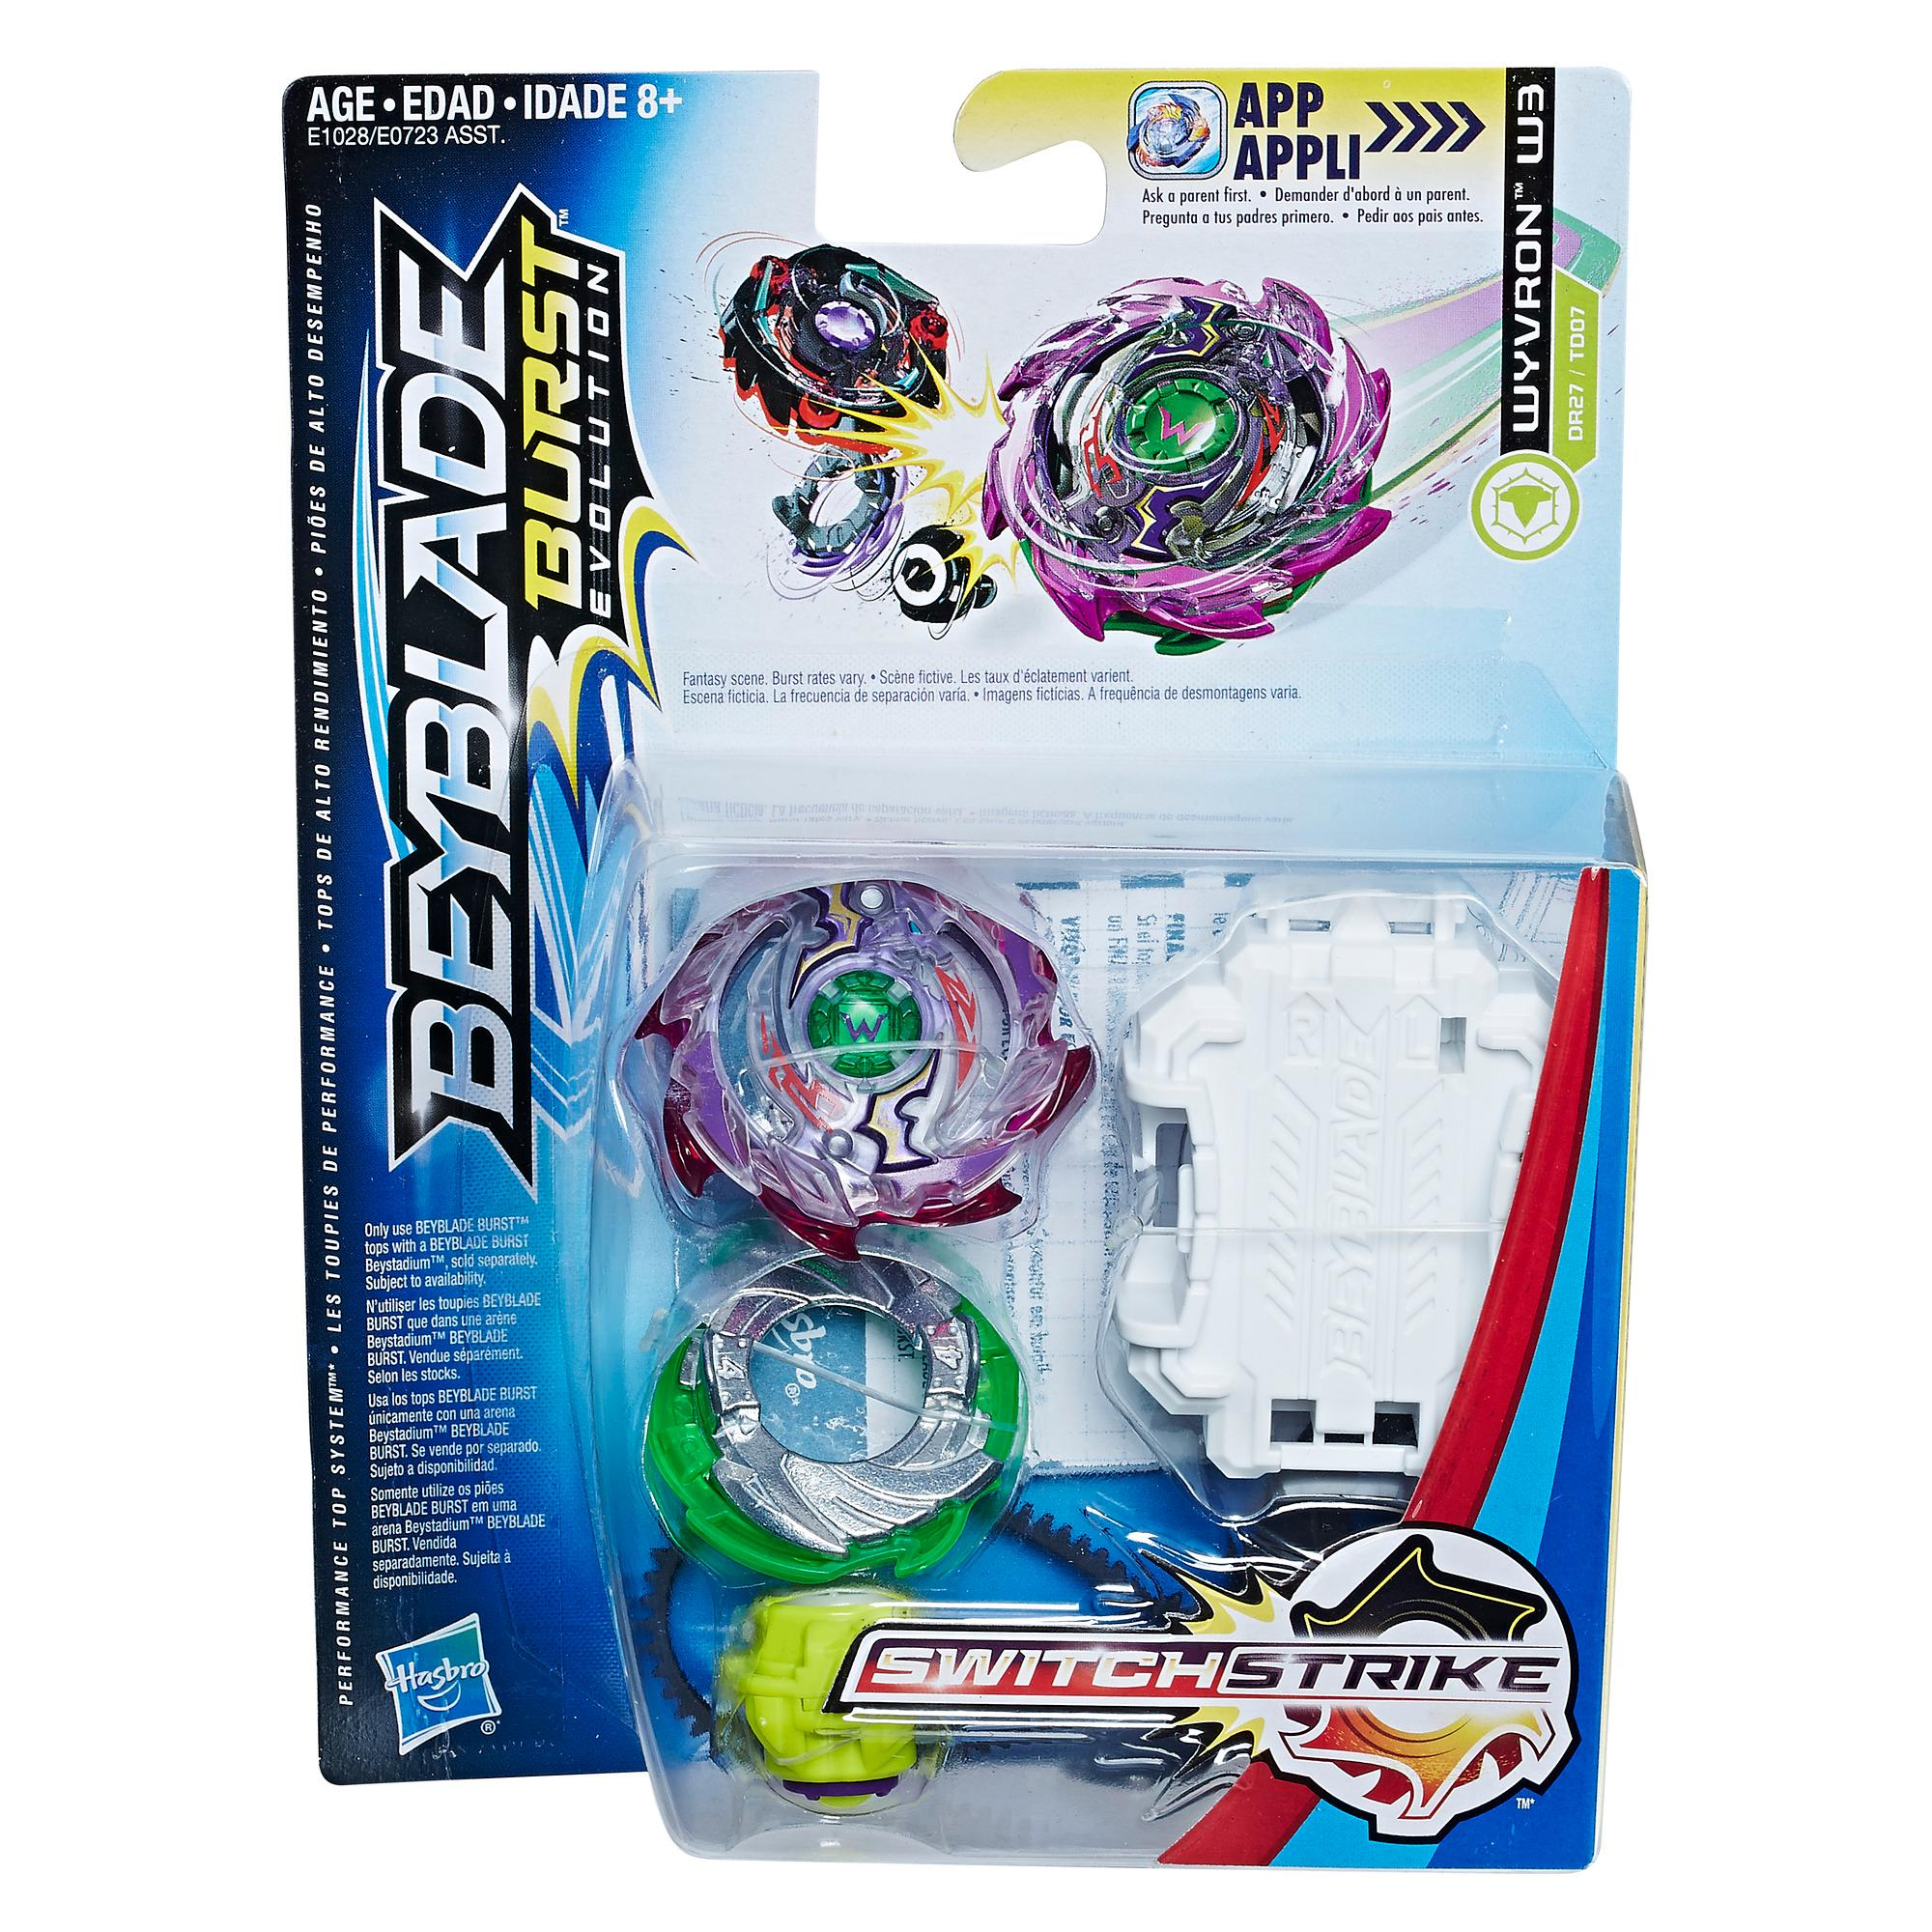 Beyblade Burst Evolution - Kit de départ SwitchStrike Wyvron W3